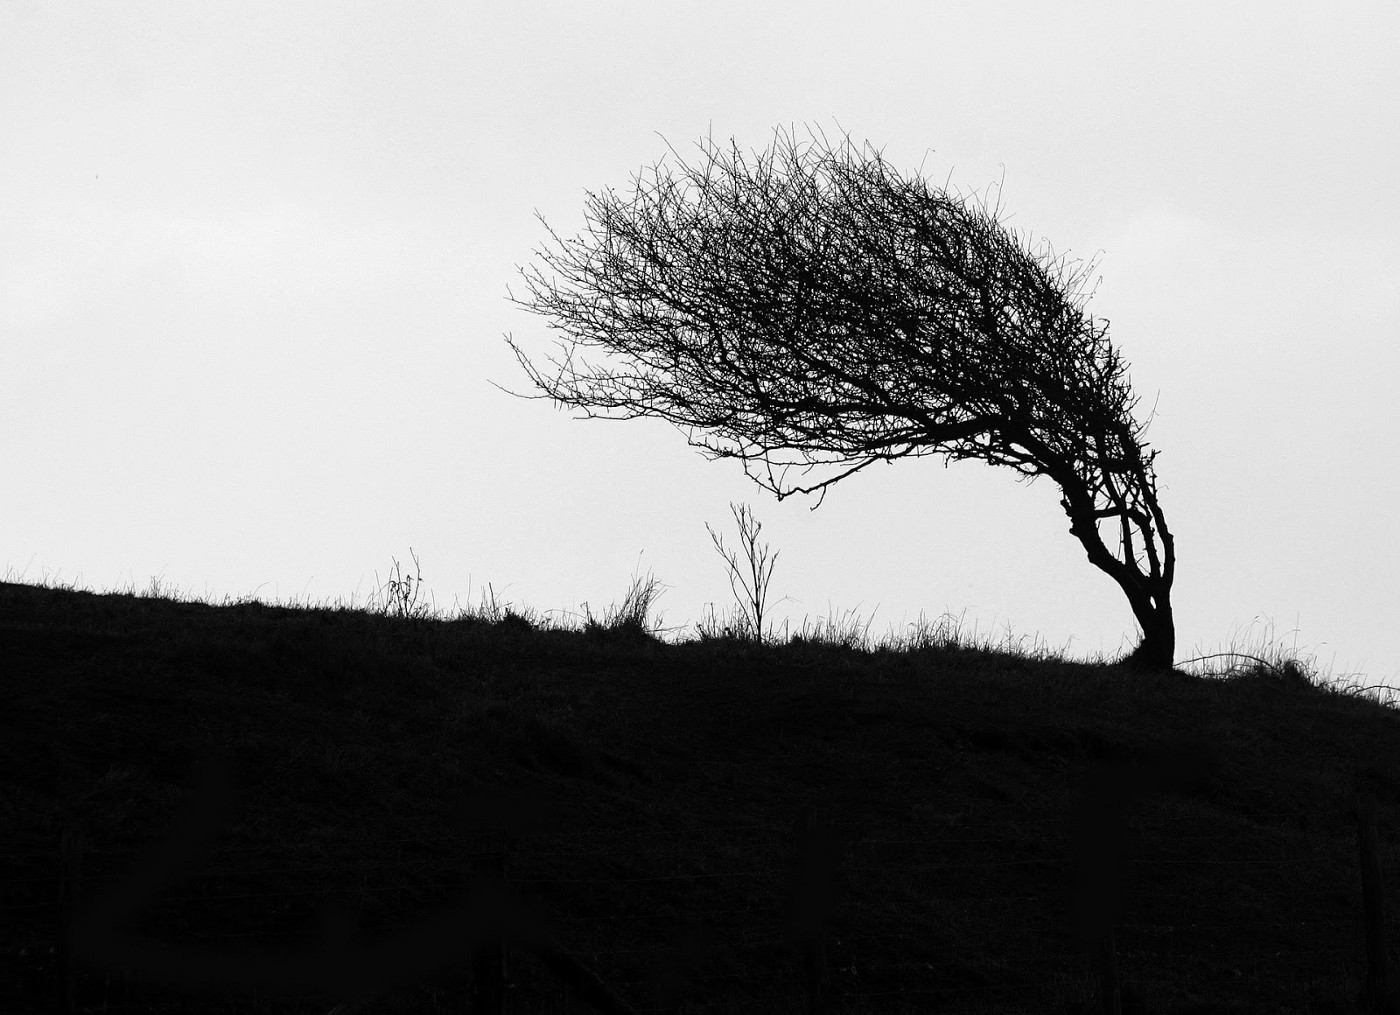 Tree bending in the wind as a symbol of resiliency.